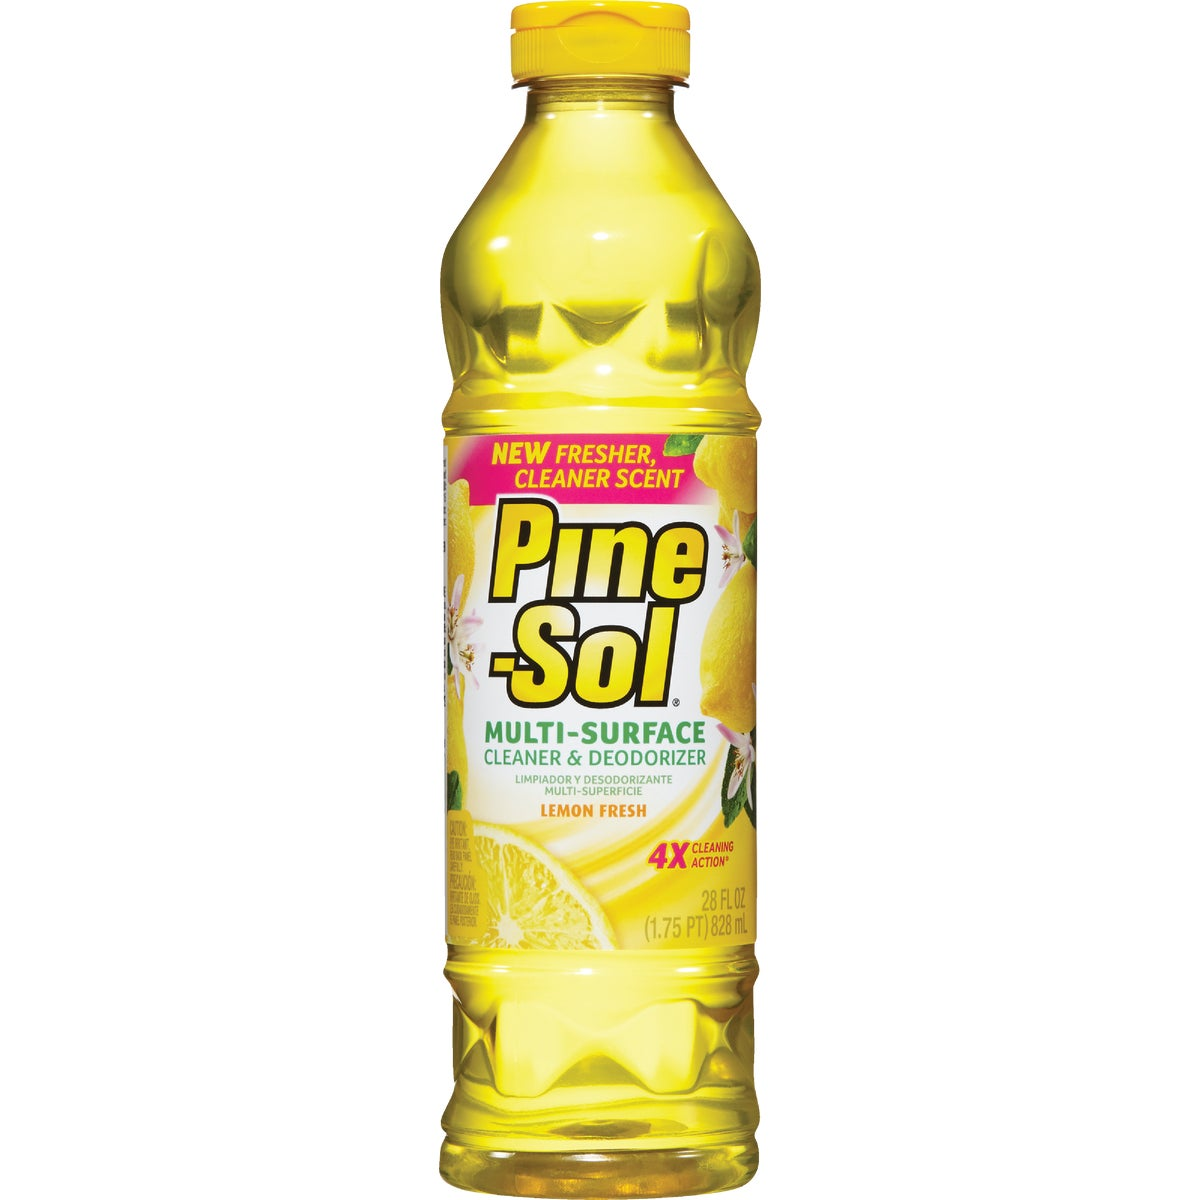 Pine-Sol 4X Cleaning Action Multi-Surface All-Purpose Cleaner, 40187